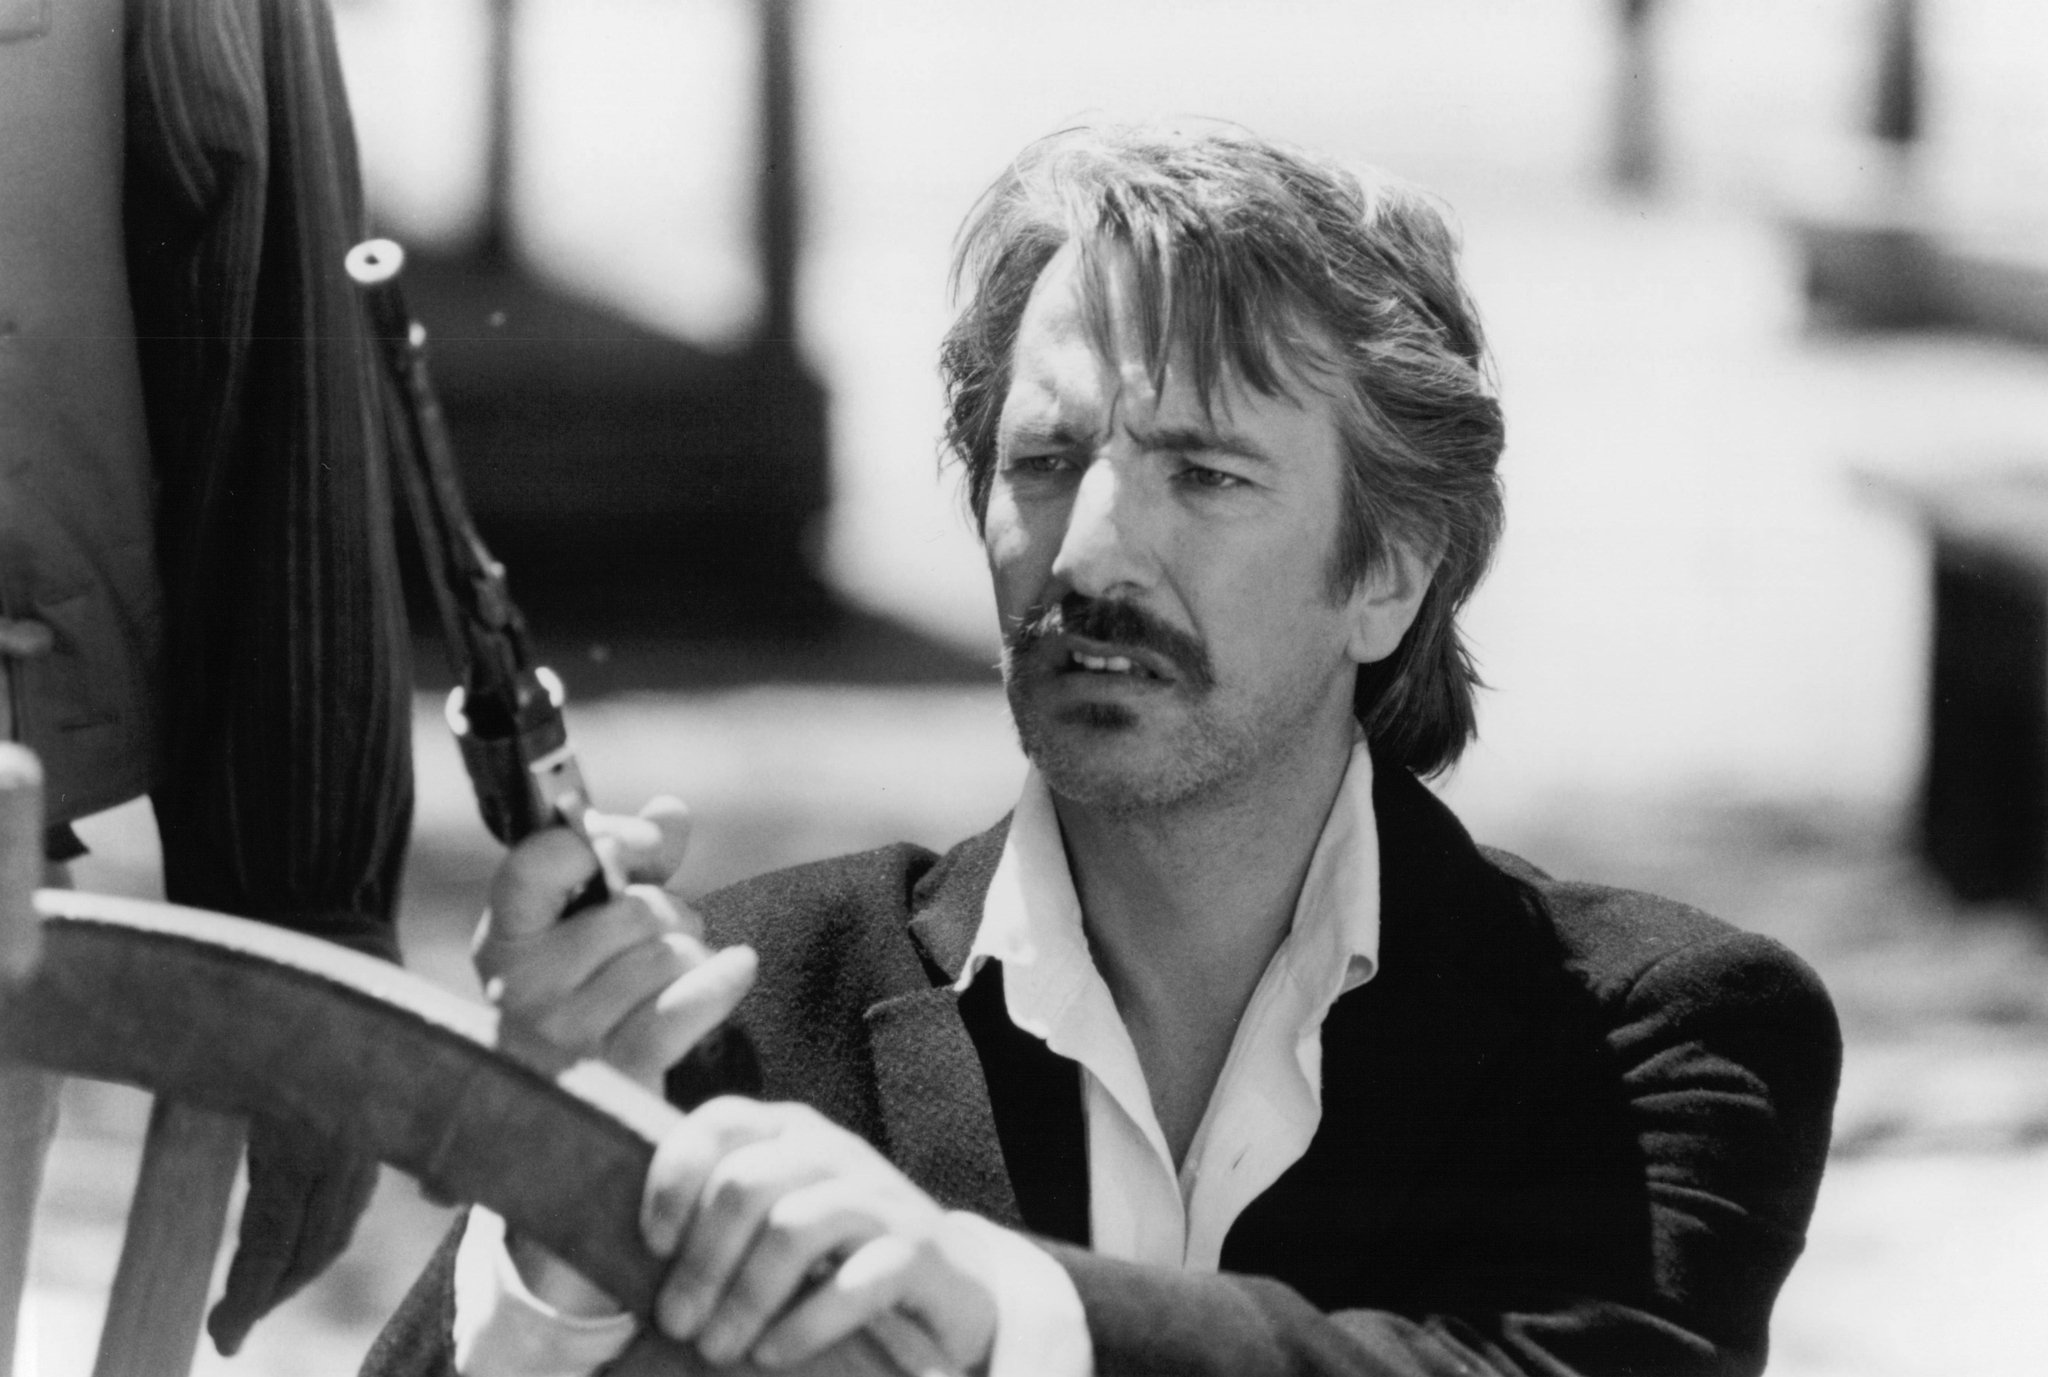 g16 20 Things You Might Not Have Realised About The Late Alan Rickman